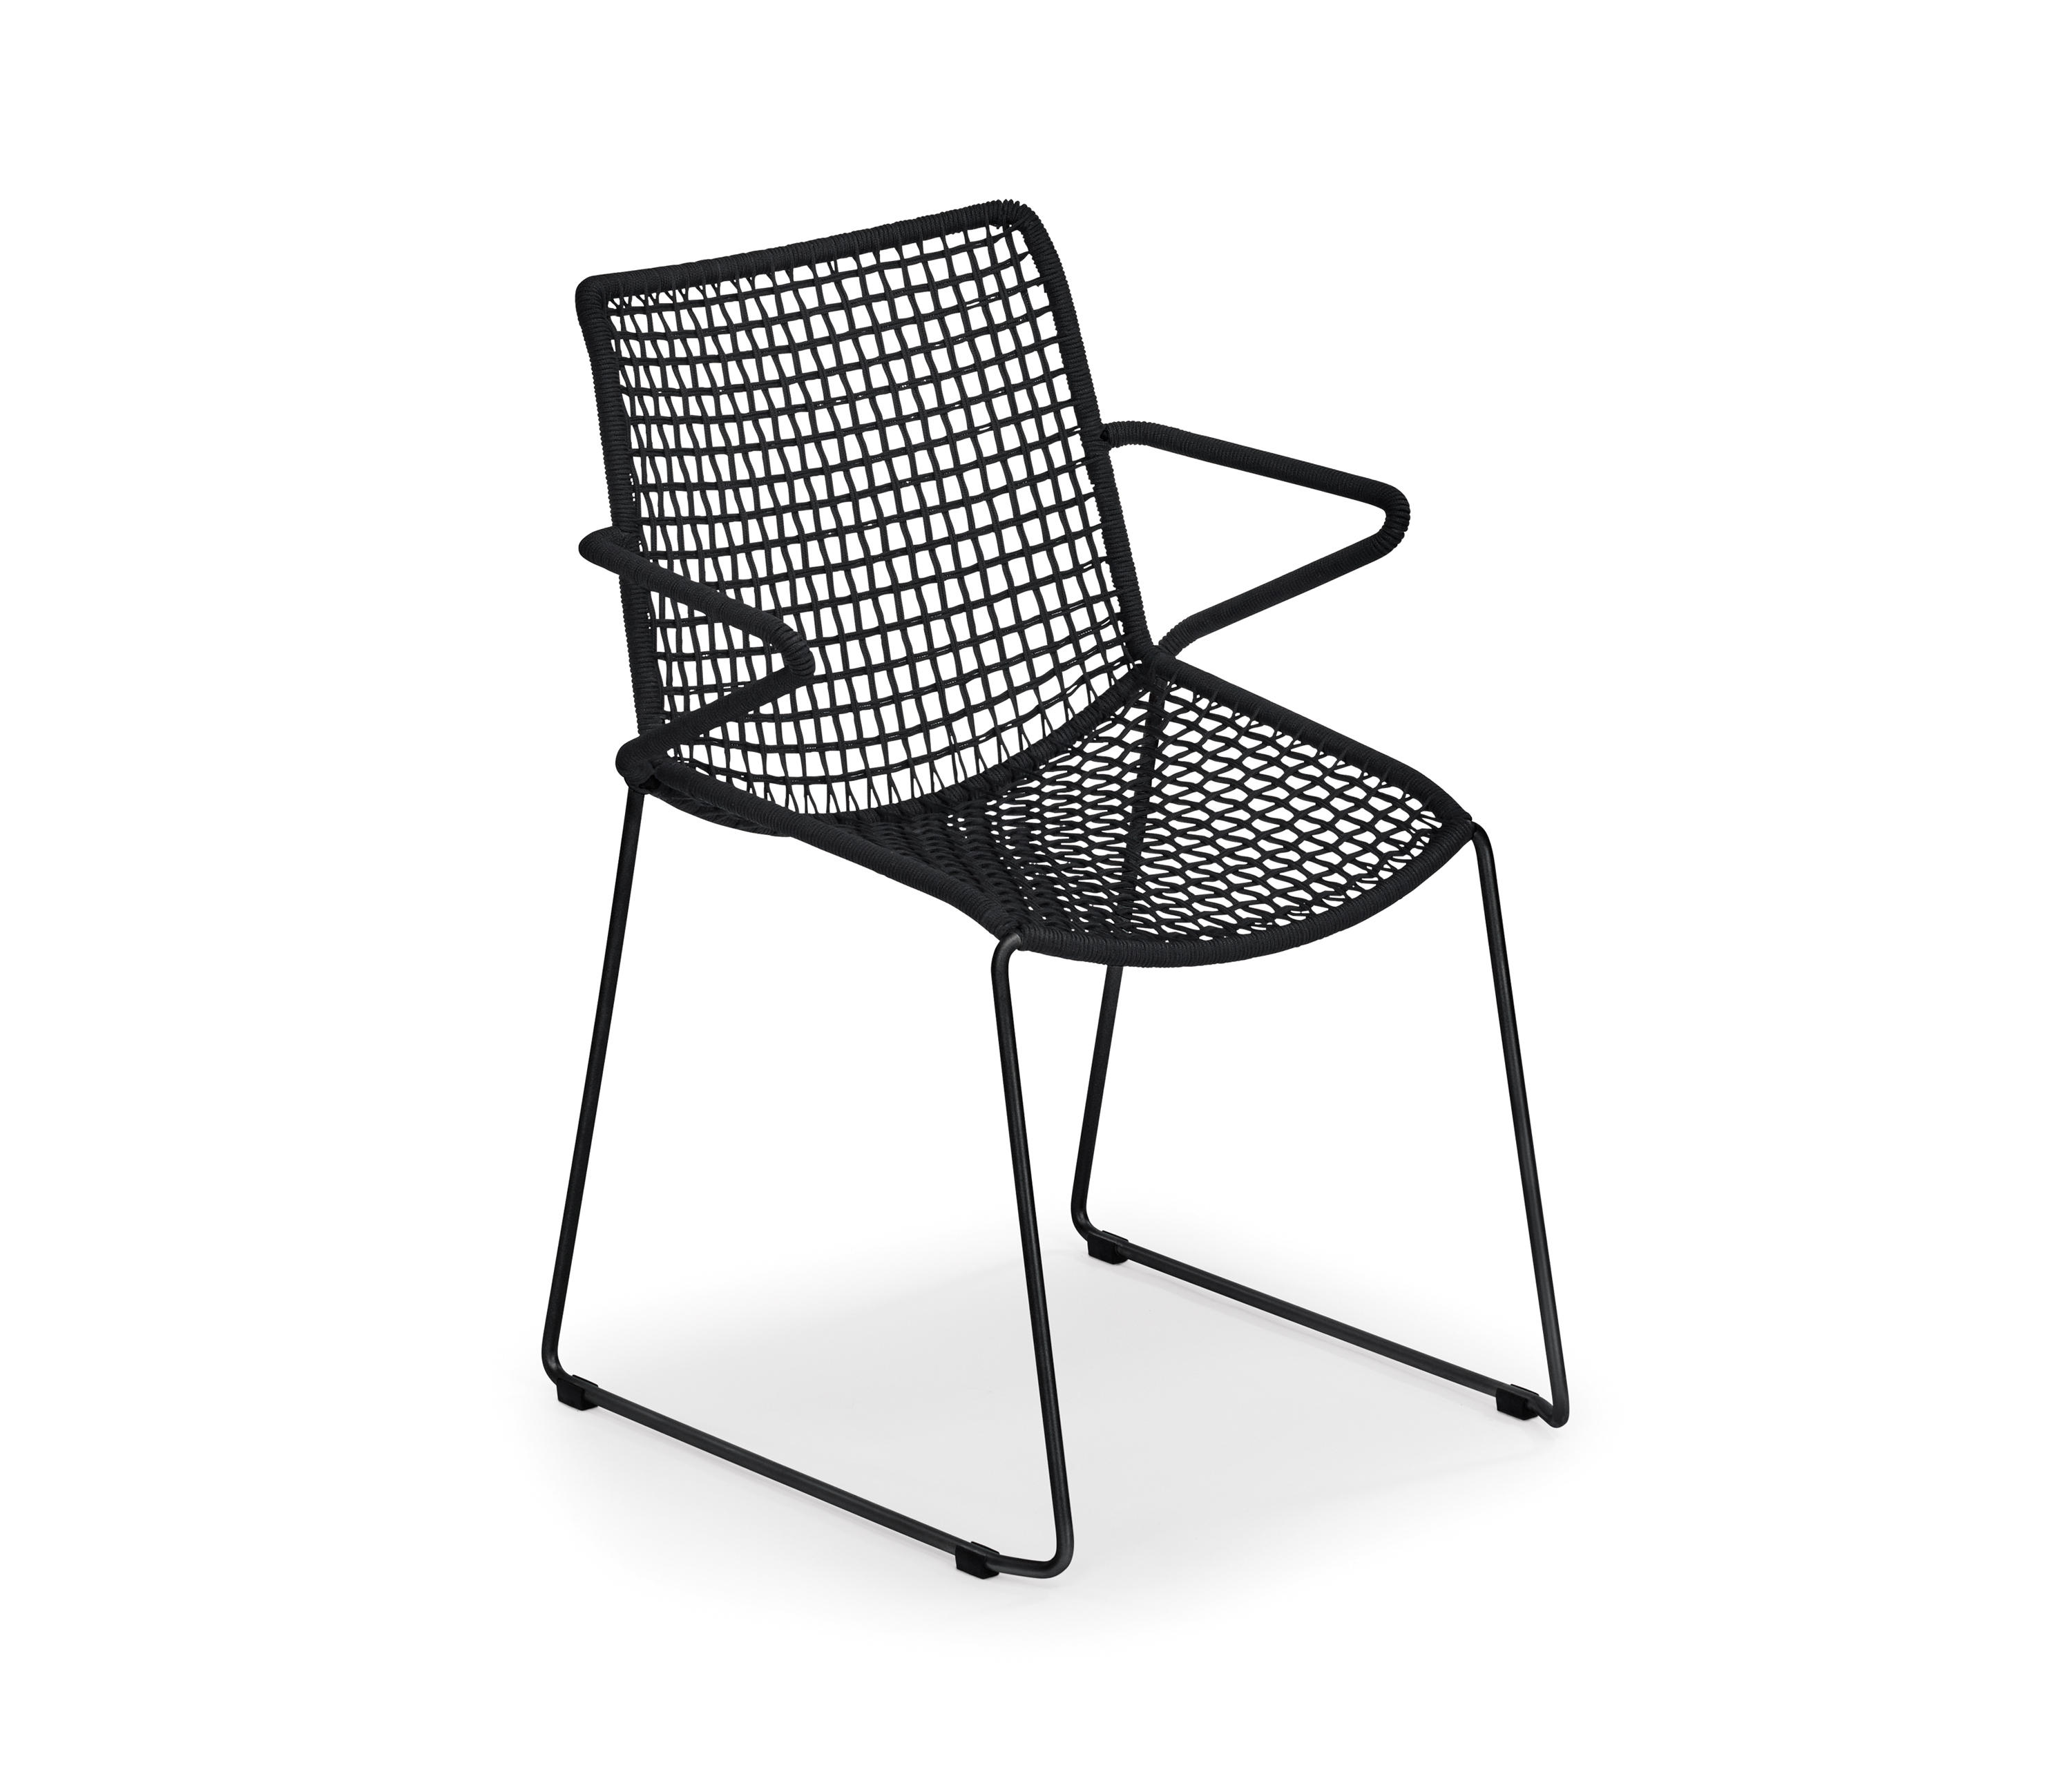 slope sessel by weishupl restaurant chairs - Planner Sessel